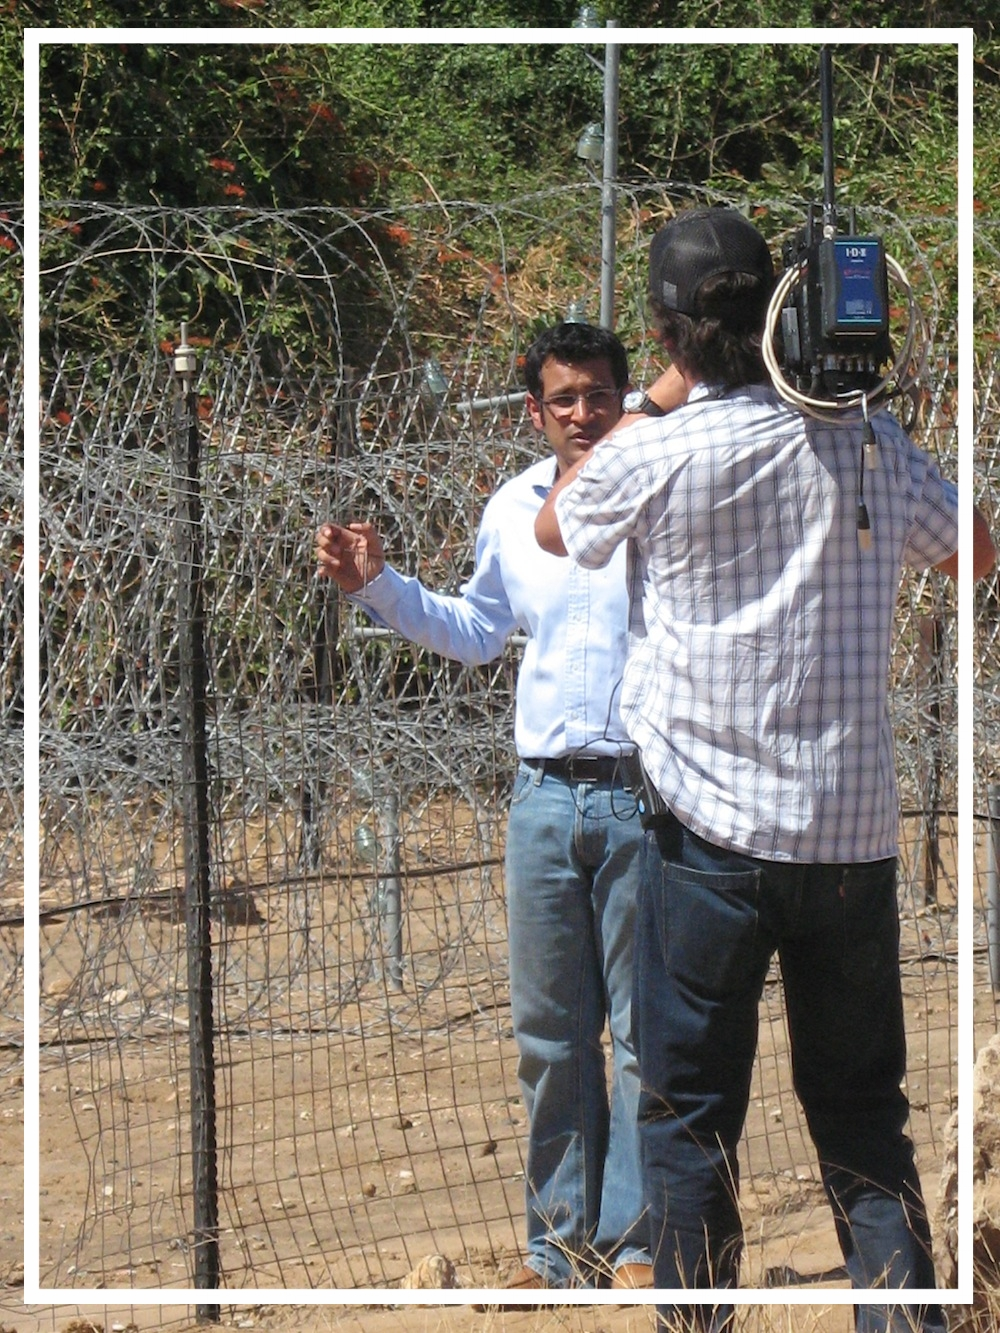 Reporting from the South Africa-Zimbabwe border, 2008